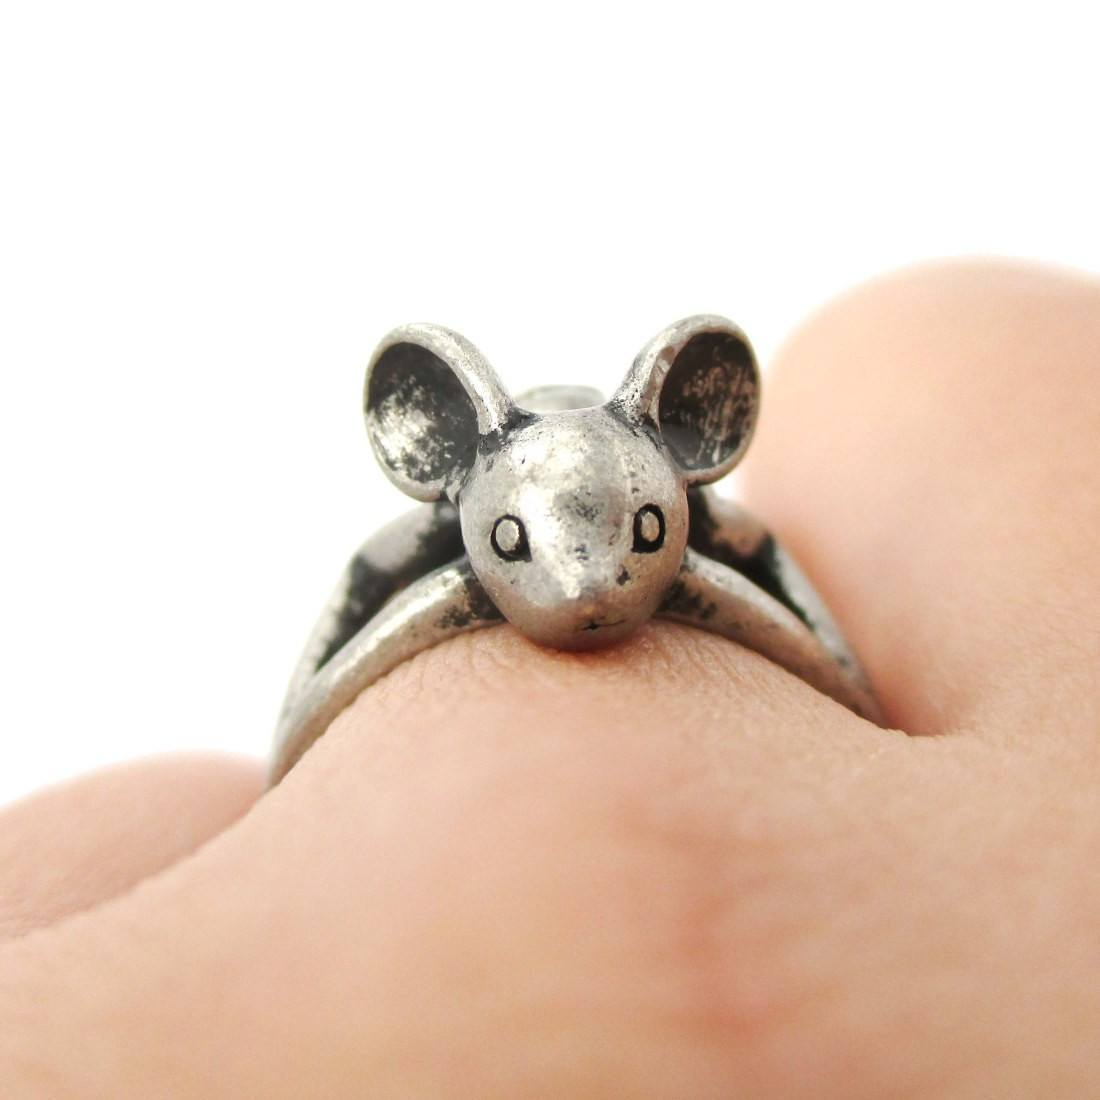 3D Baby Bat Shaped Animal Knuckle Wrap Ring in Silver